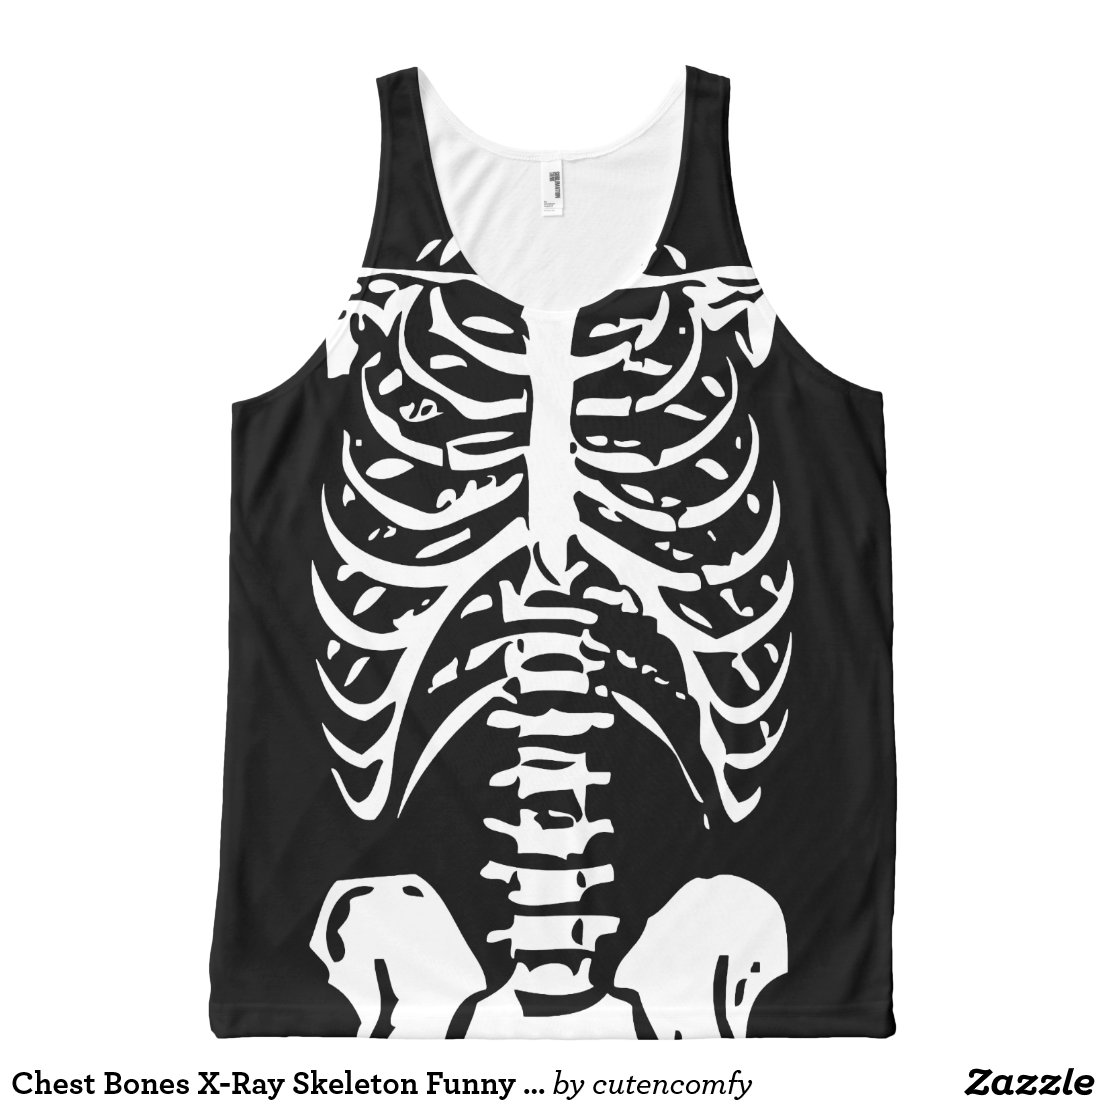 Chest Bones X-Ray Skeleton Funny Costume Halloween All-Over Print Tank Top